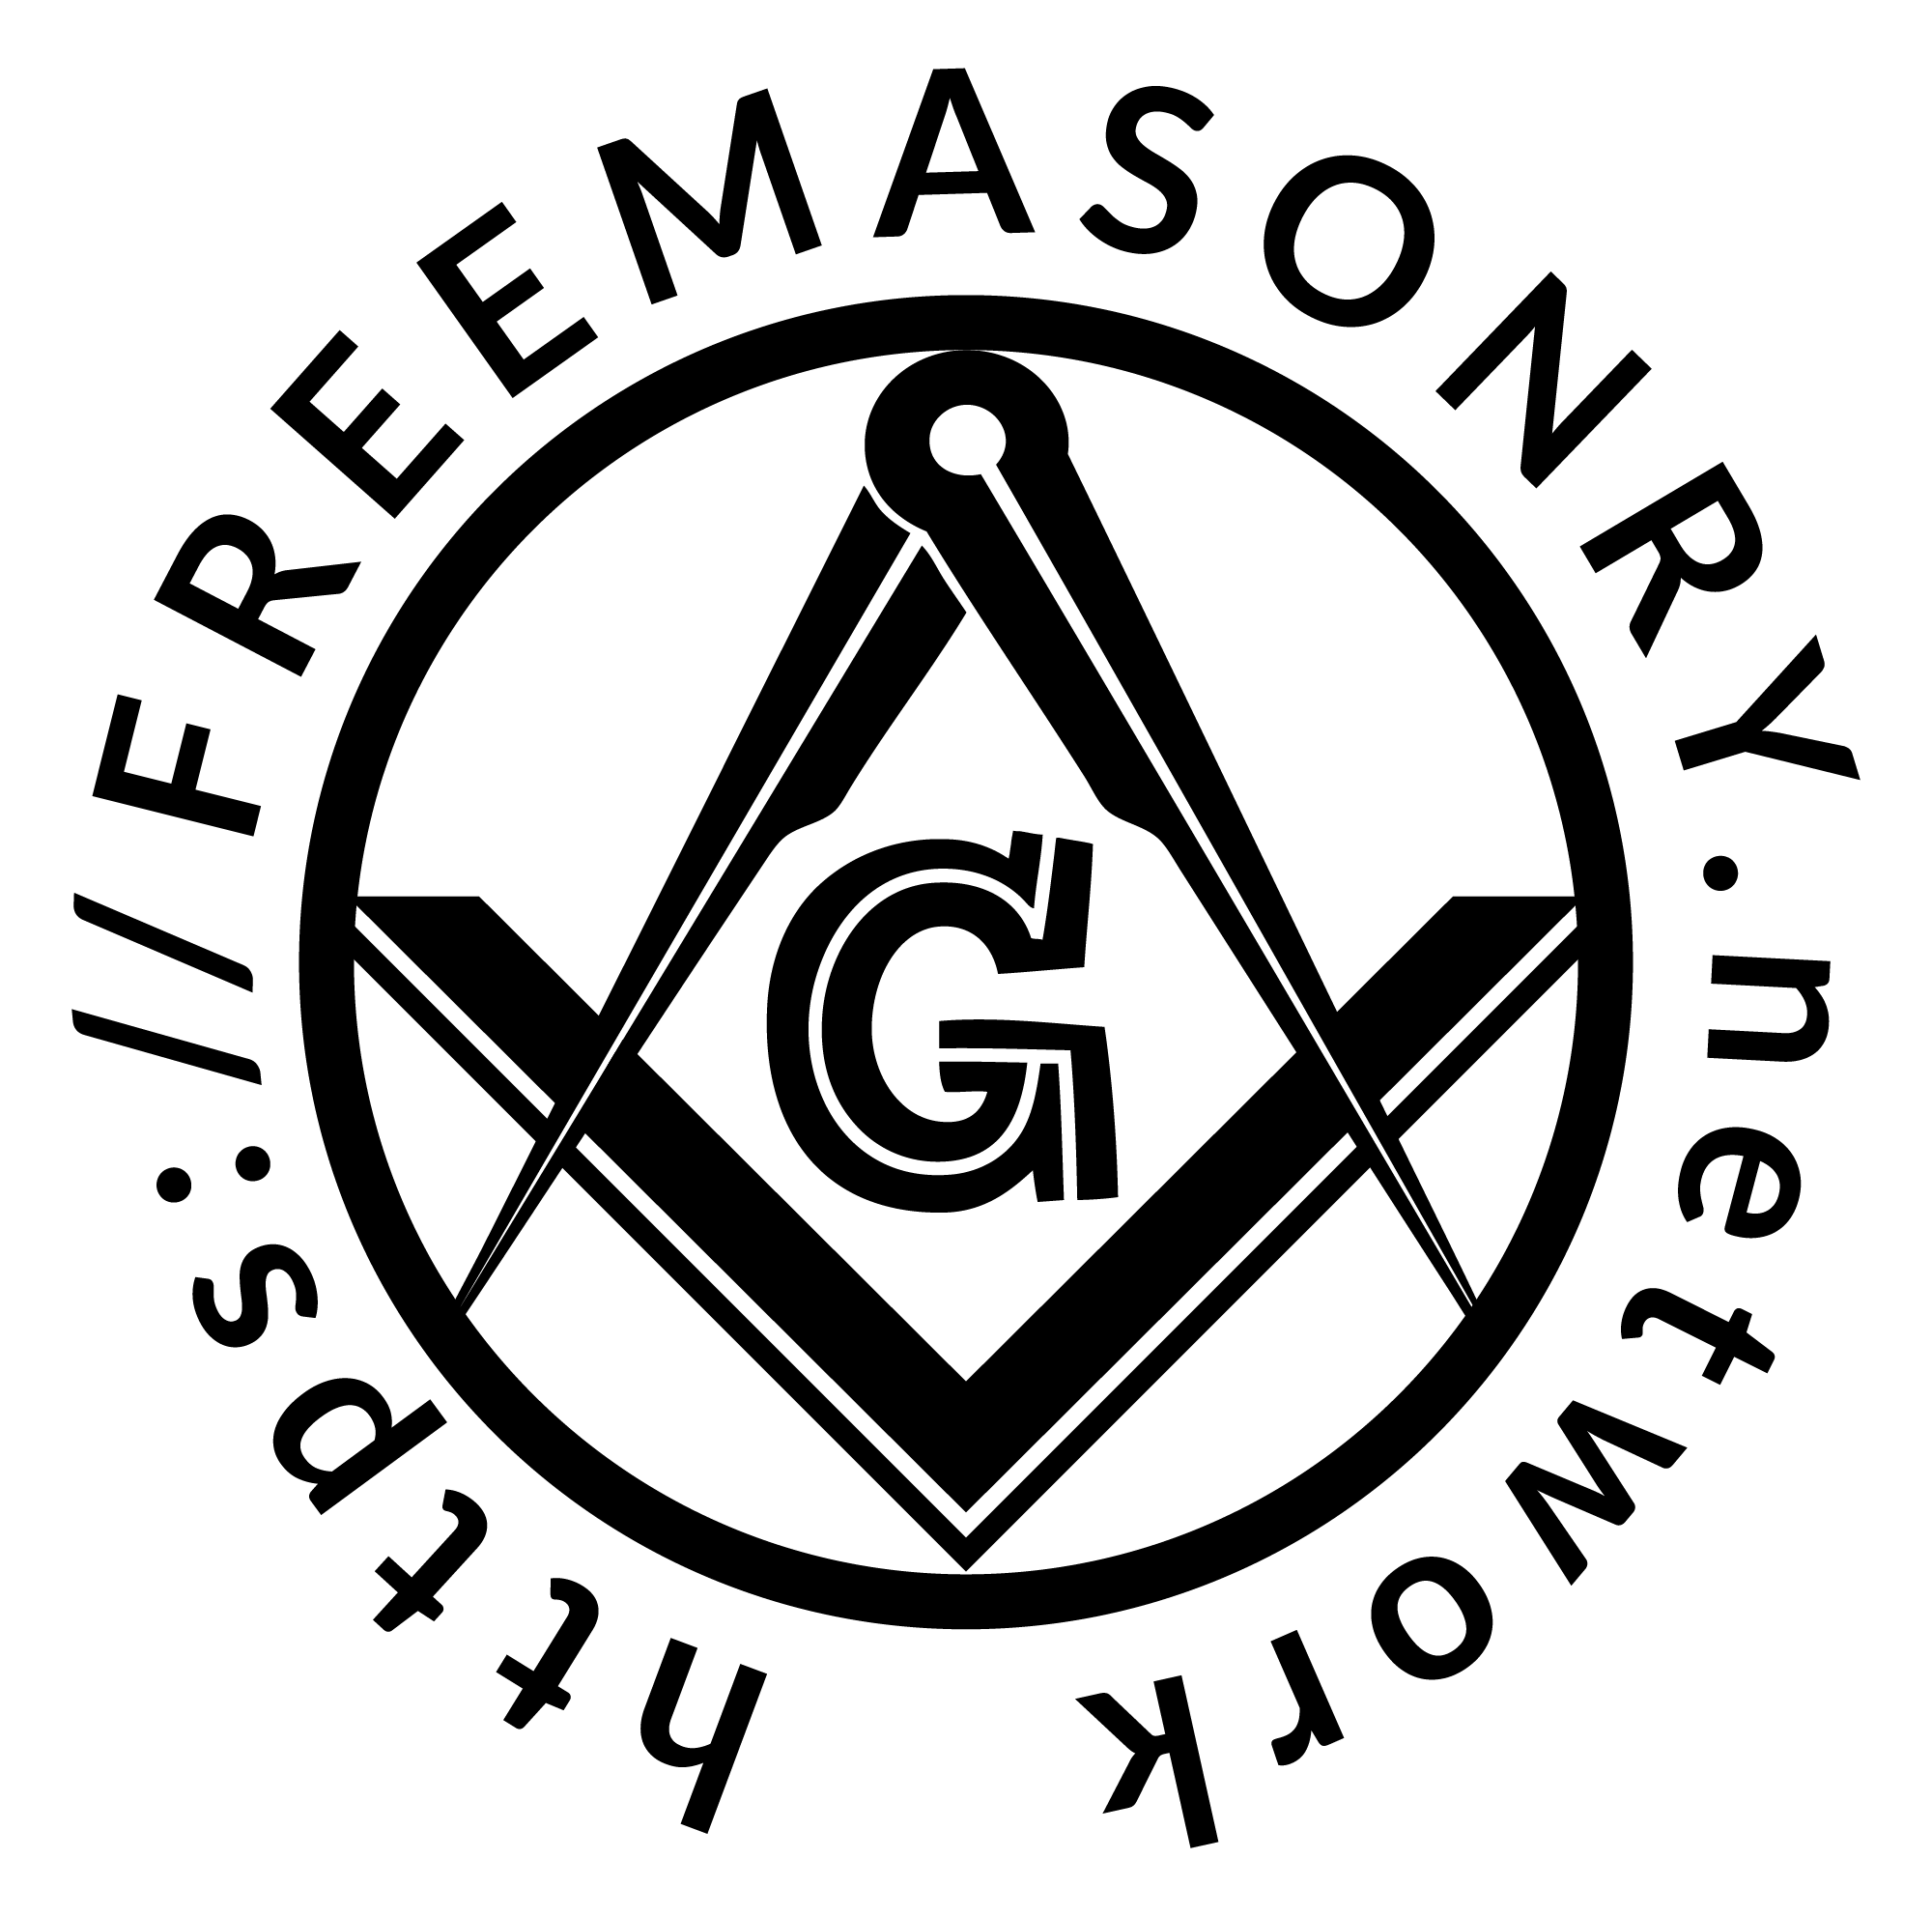 FREEMASONRY IN SERBIA